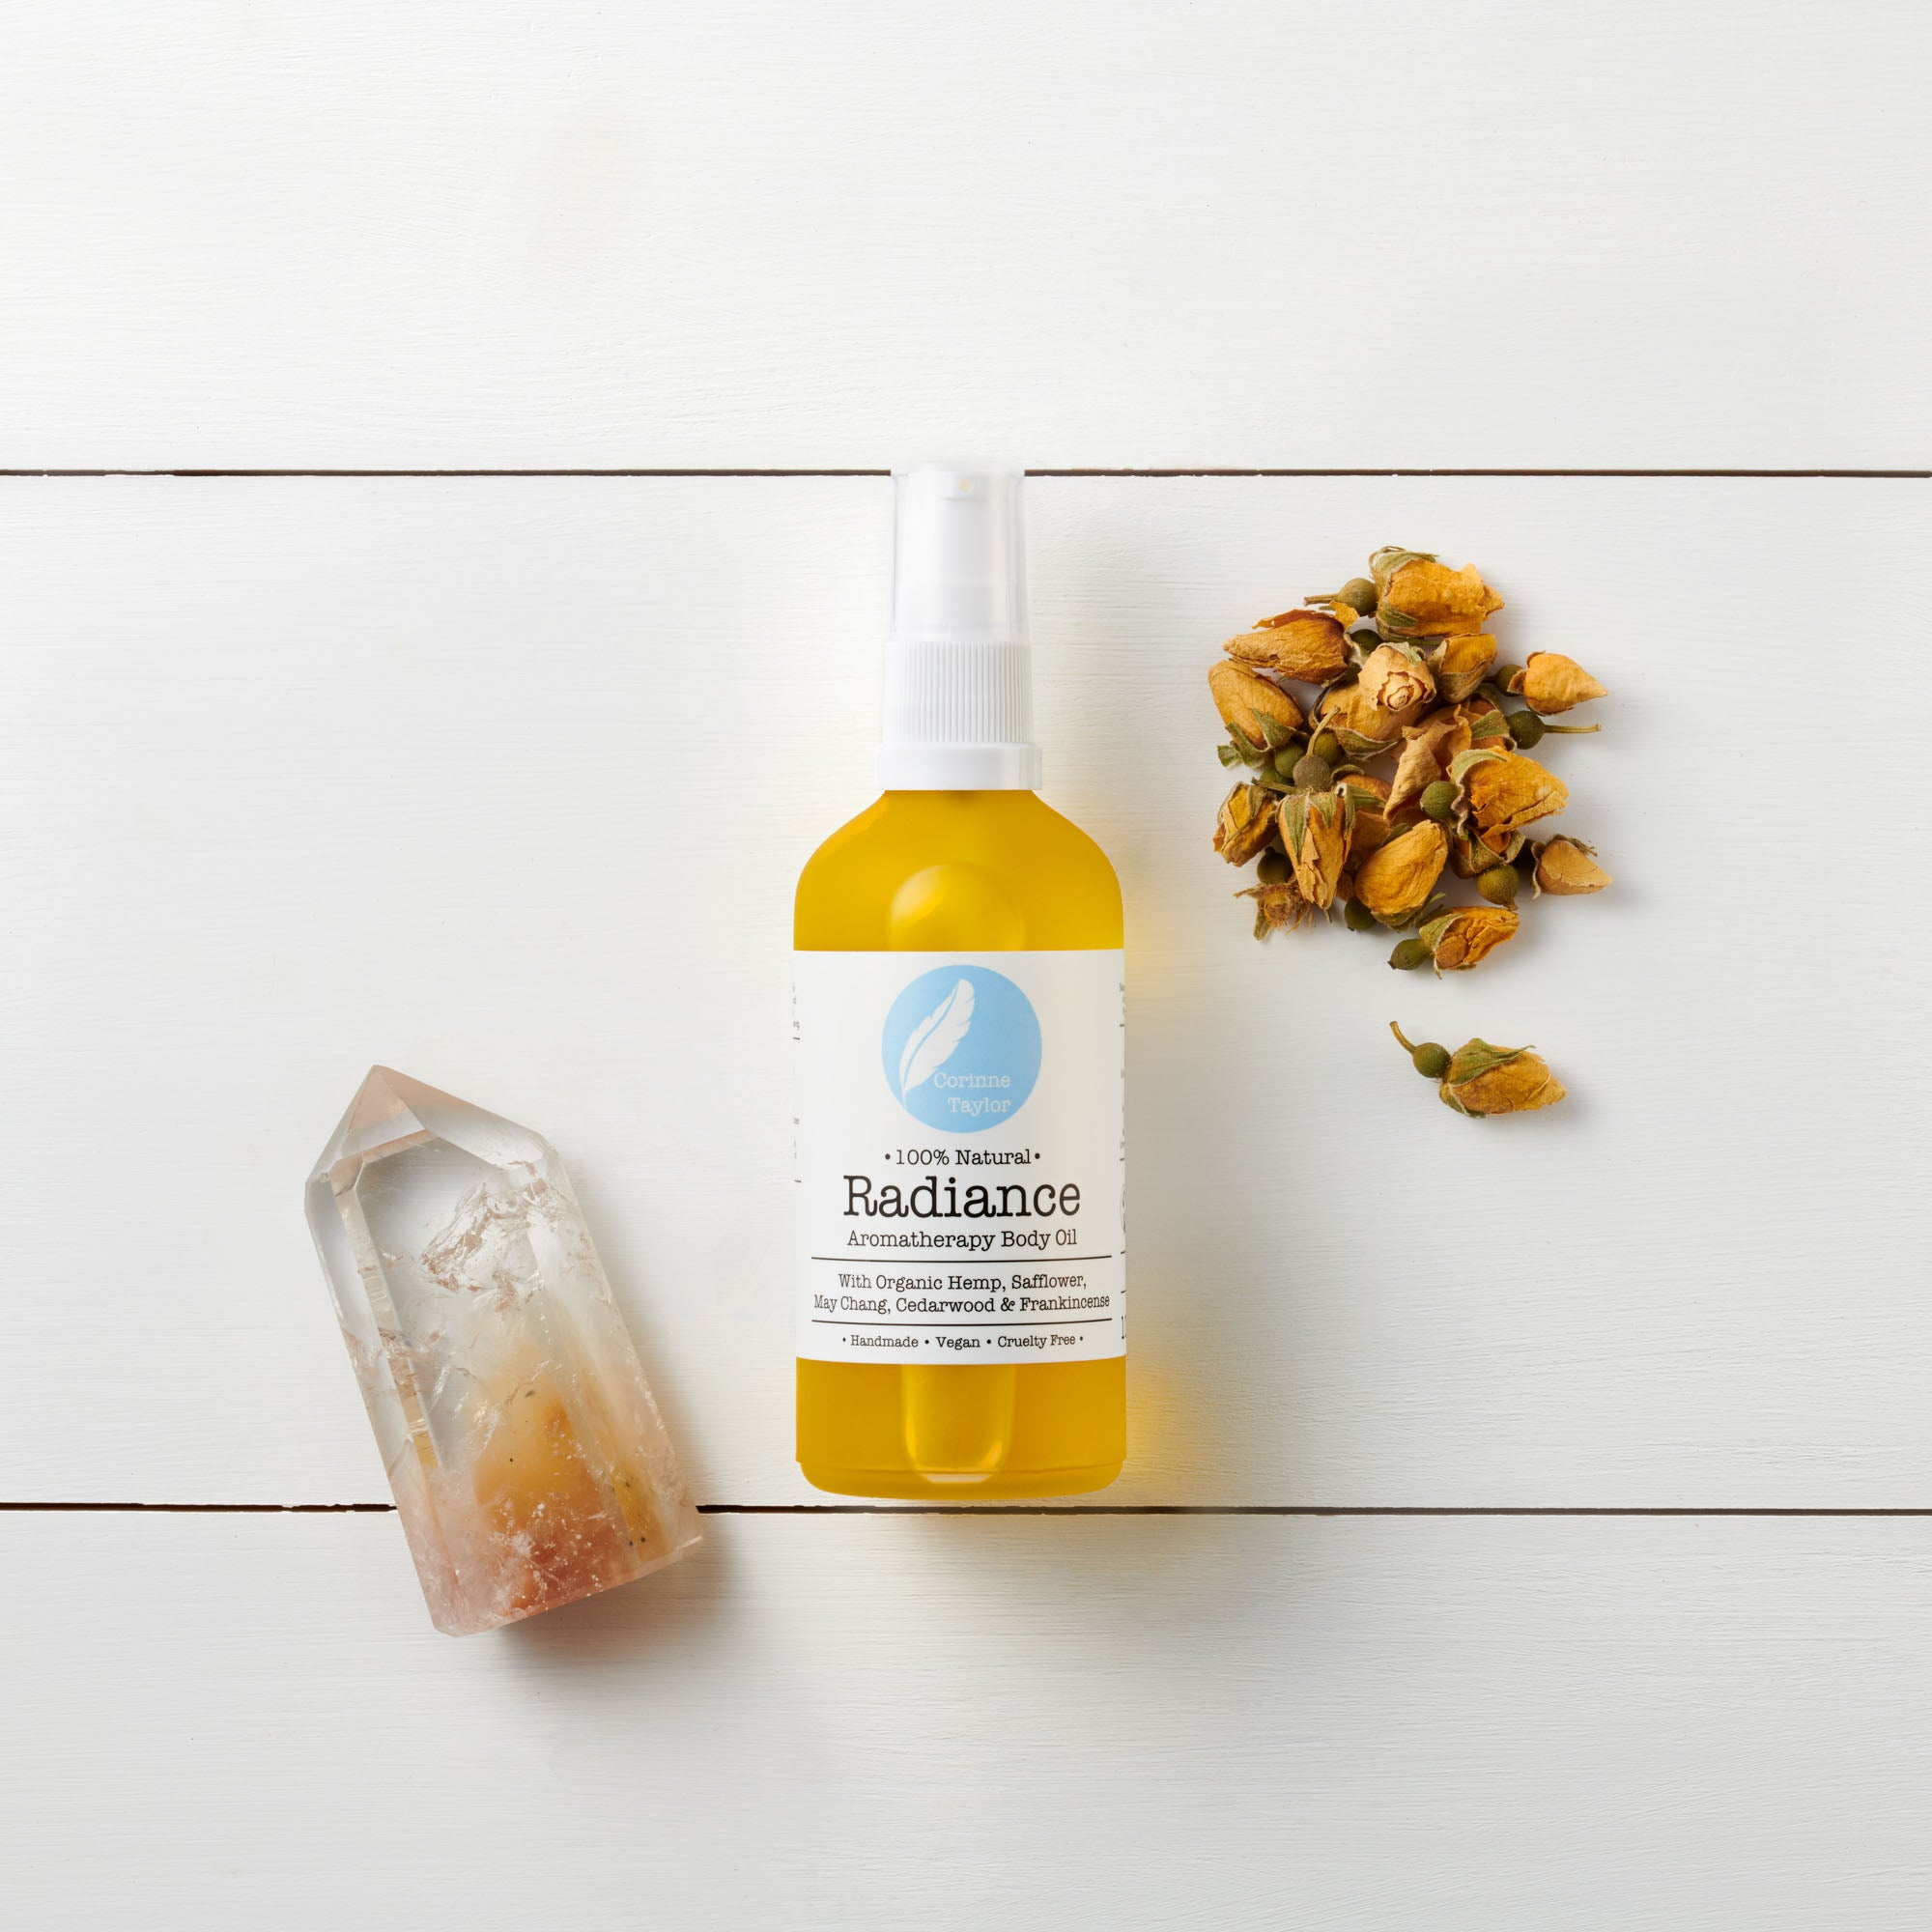 Radiance organic aromatherapy body oil with Hemp, safflower, Jojoba, Frankincense & Cedarwood. Vegan & cruelty free.